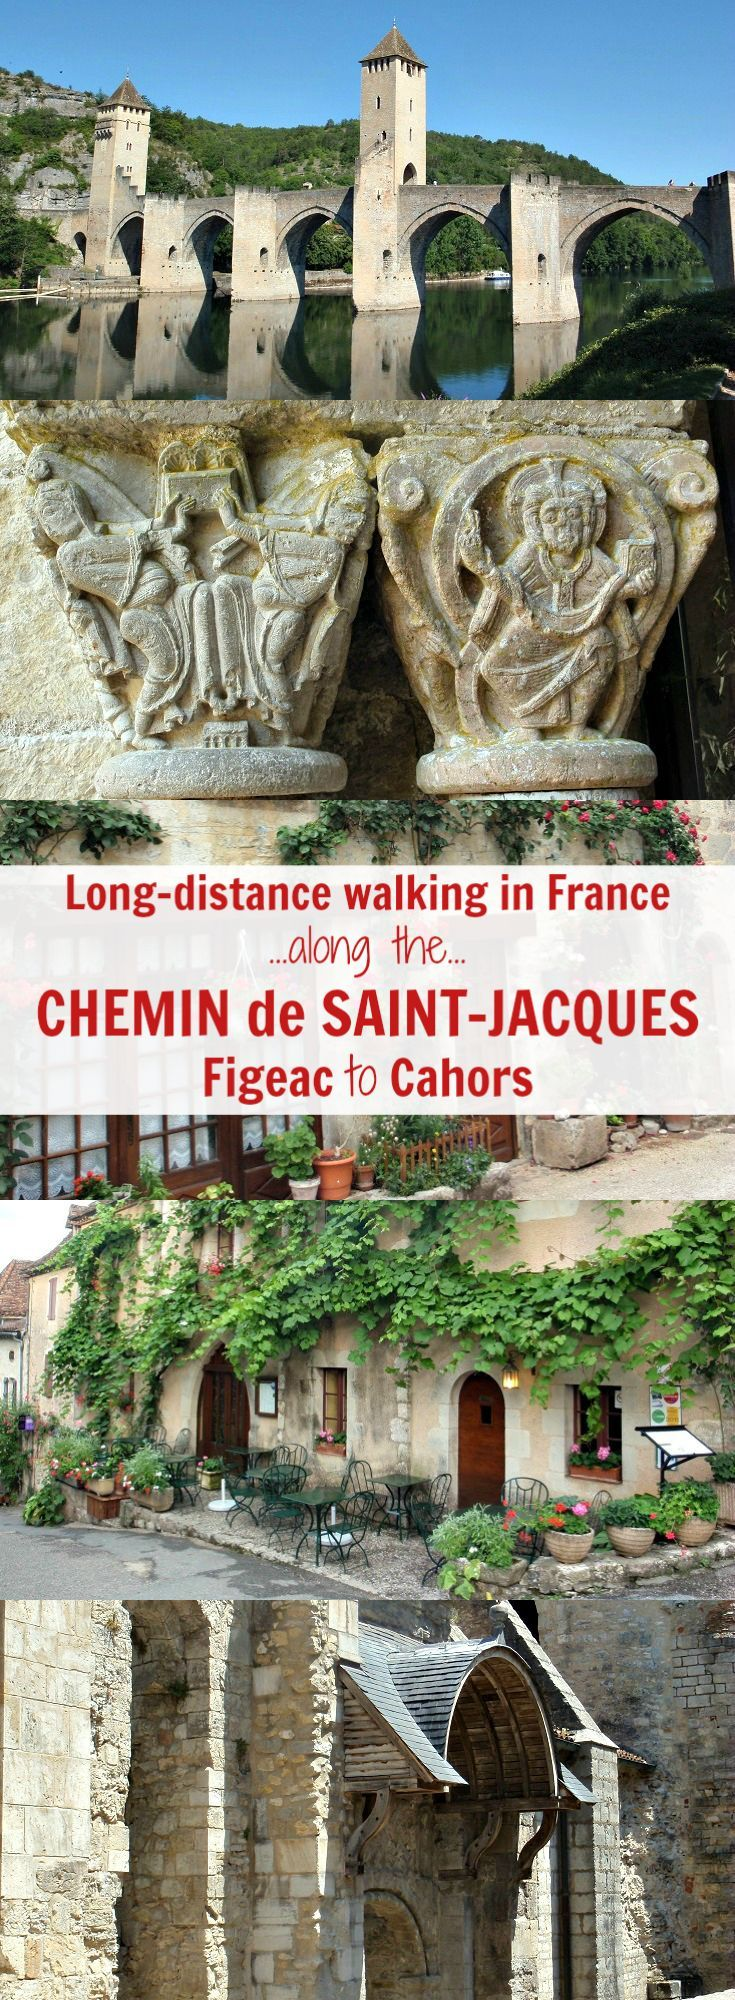 Explore rural France on a 7-day walk along the Chemin de Saint-Jacques from Figeac to Cahors